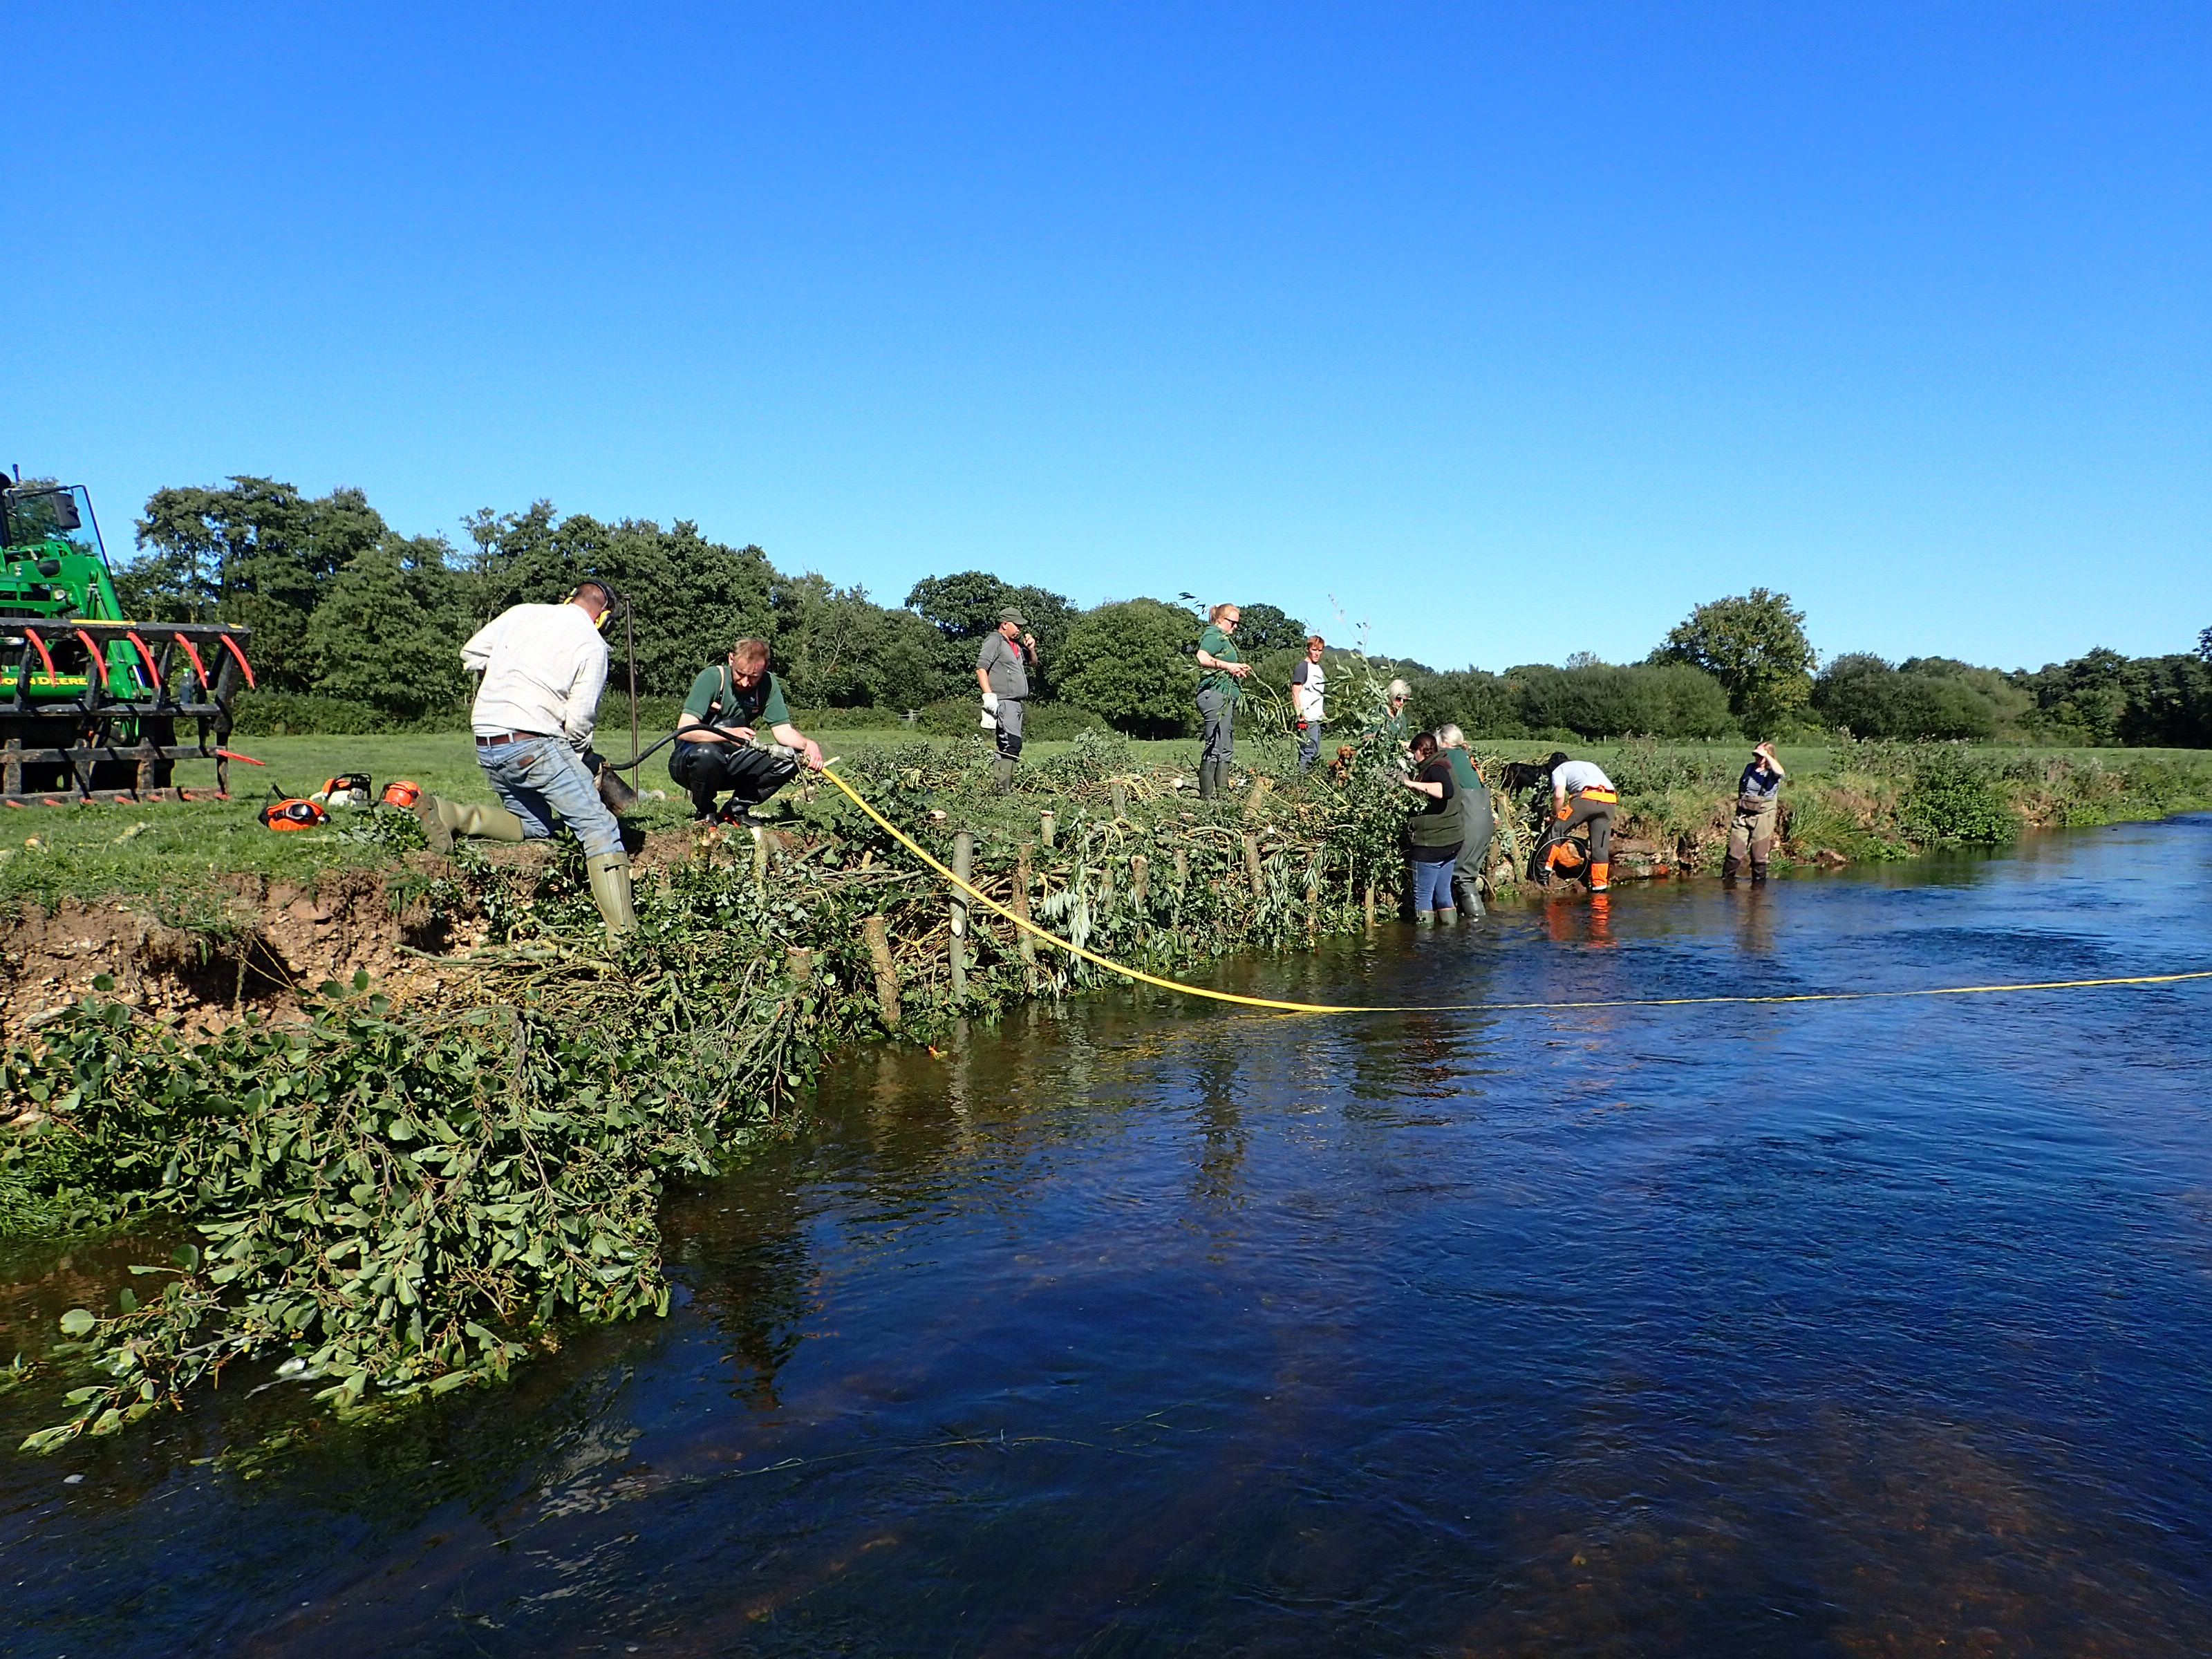 Volunteers repairing an eroded bank on the River Culm